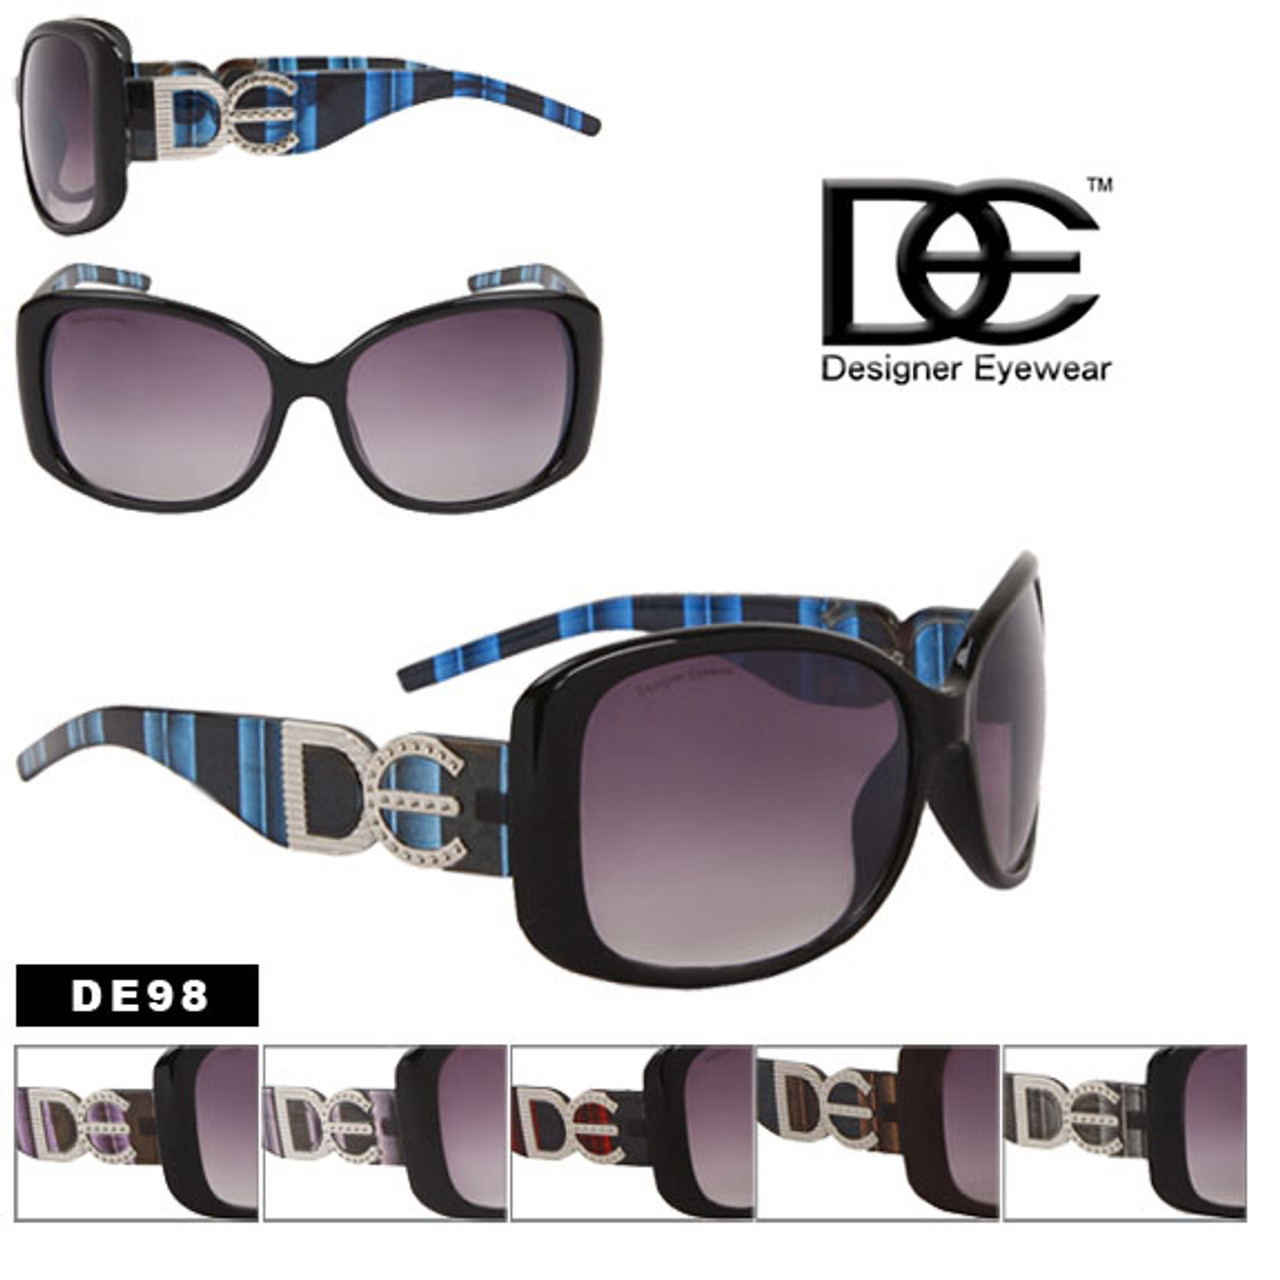 DE Fashion Sunglasses Wholesale